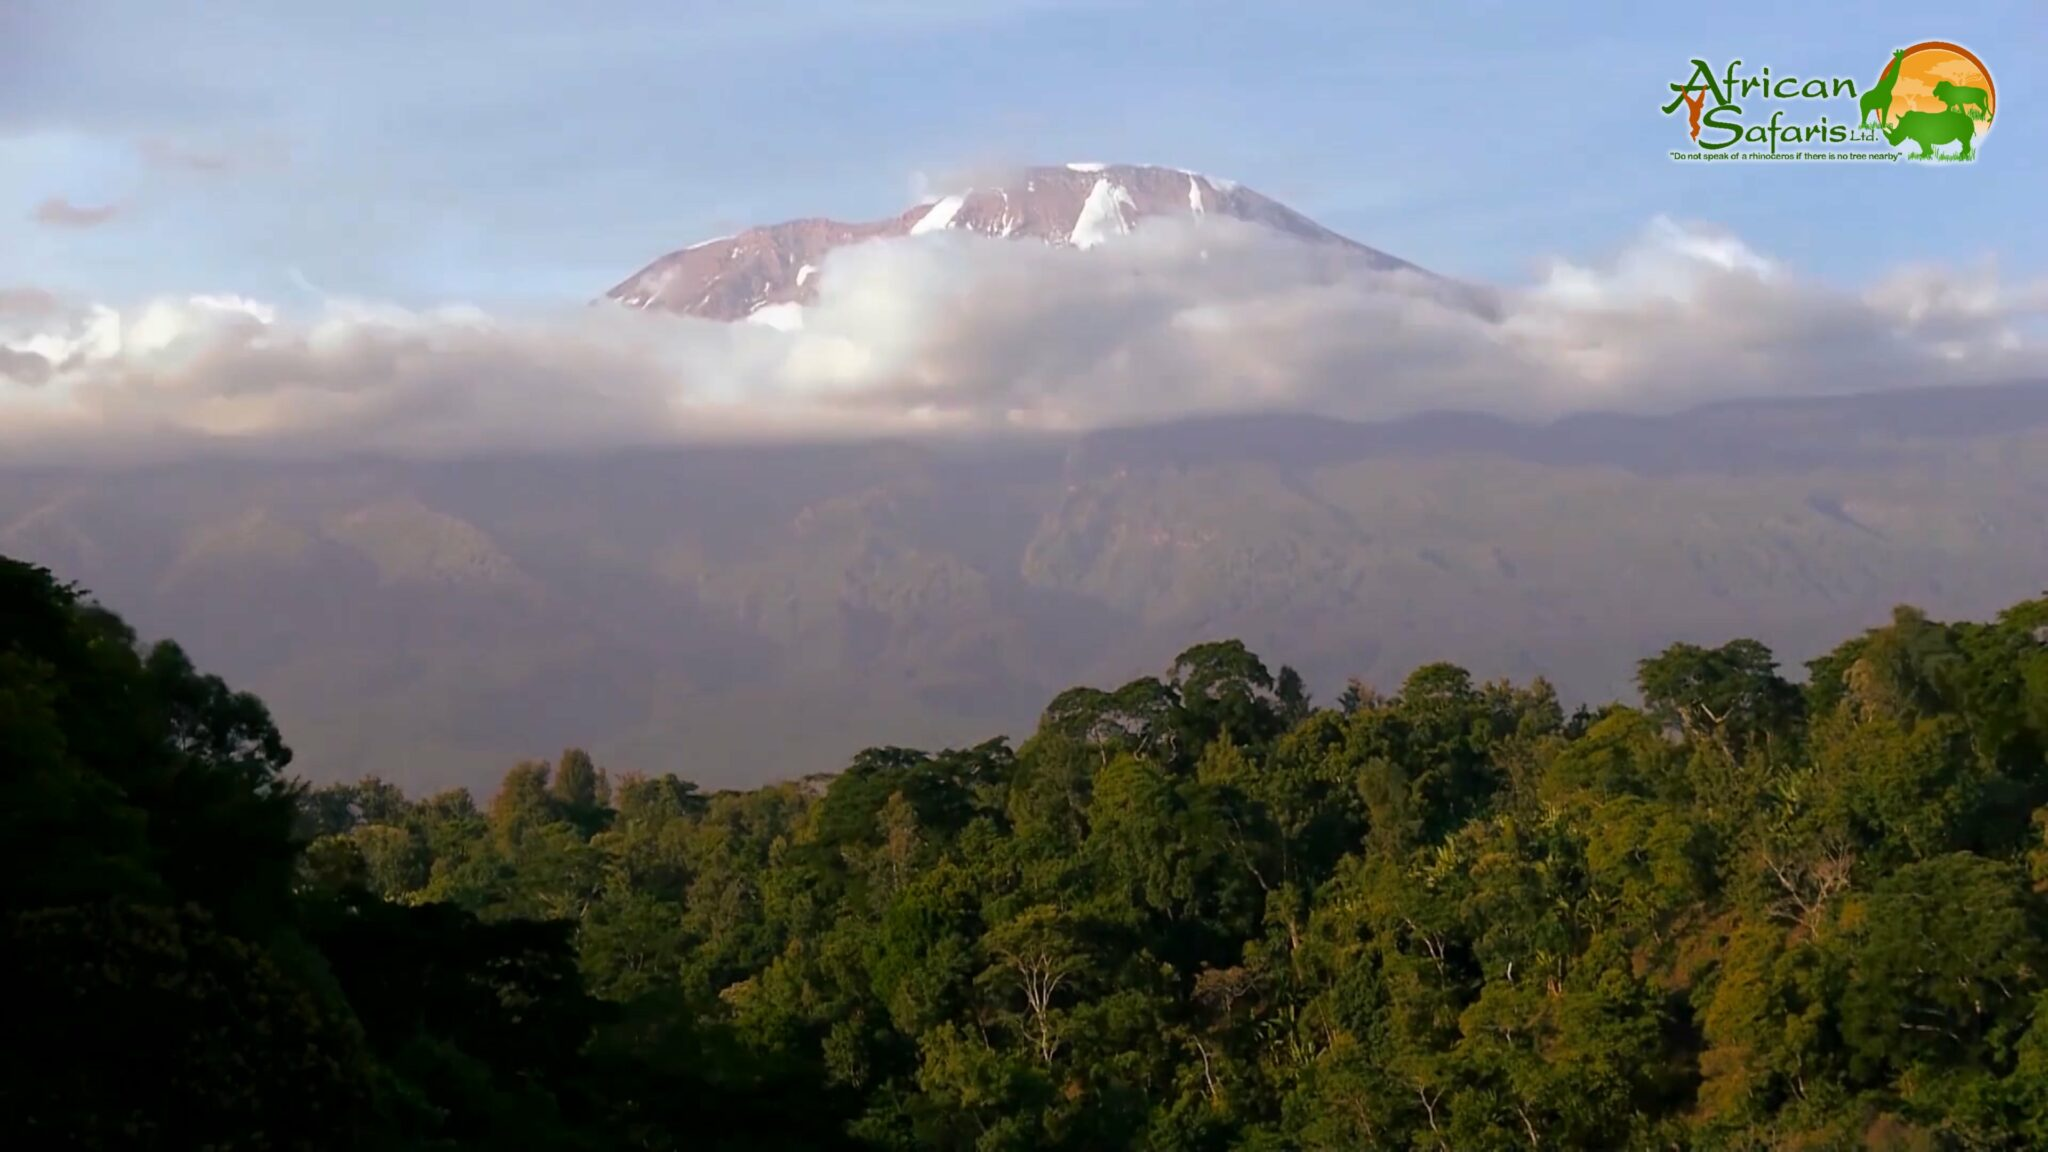 Mt Kilimanjaro - The Roof of Africa